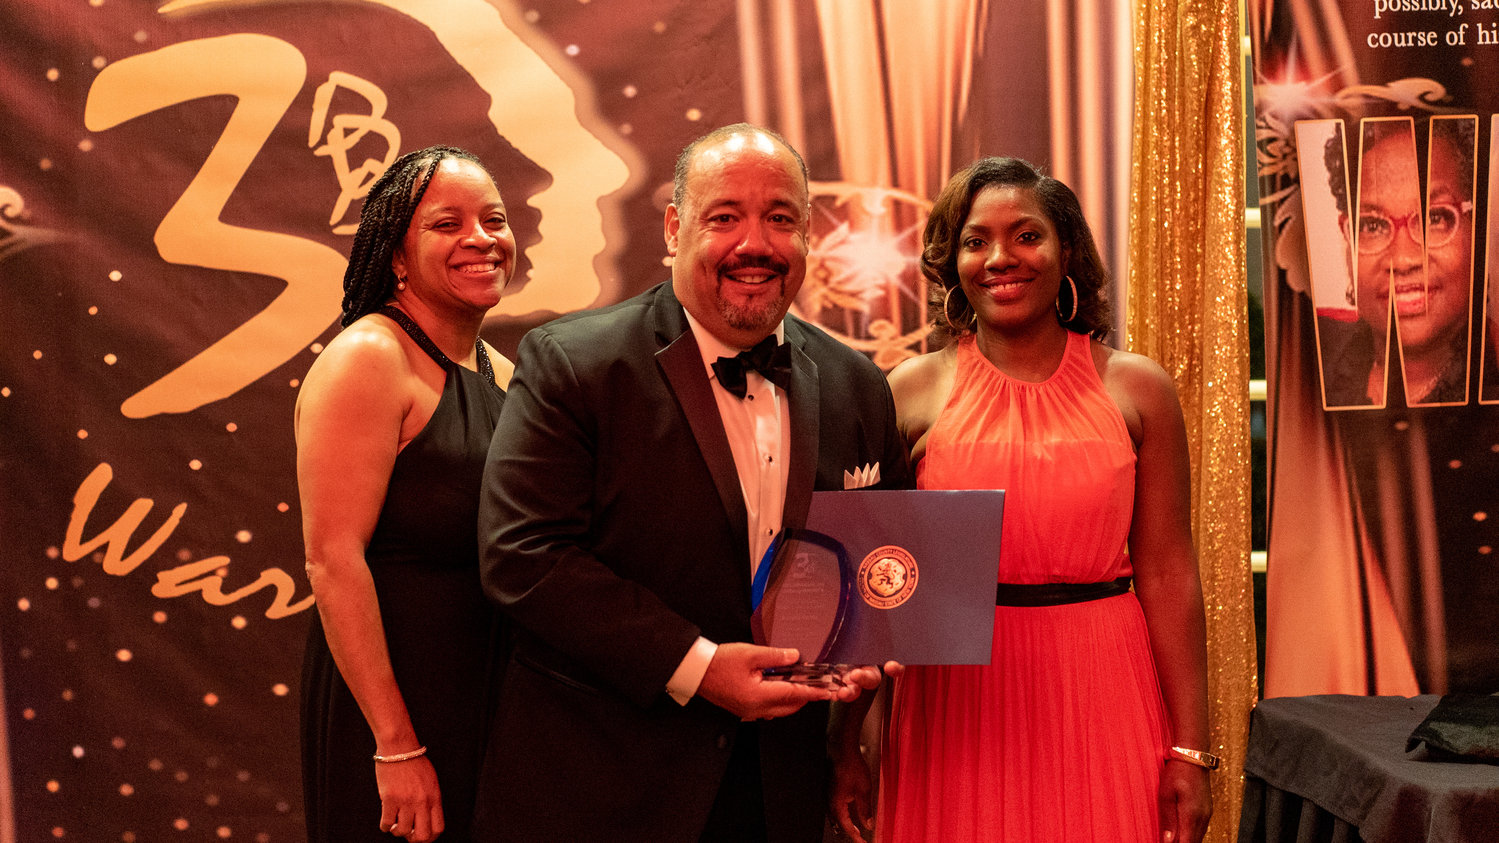 Deputy Town of Hempstead Comptroller Richard Ramos was flanked by 3D's Aftercare Inc. founder and executive director Dr. Zodelia Williams, left, and Dr. Audrey Kirkland, president of 3D's, at 3D's Unsung Warriors Gala at Coral House in Baldwin on Oct. 24.